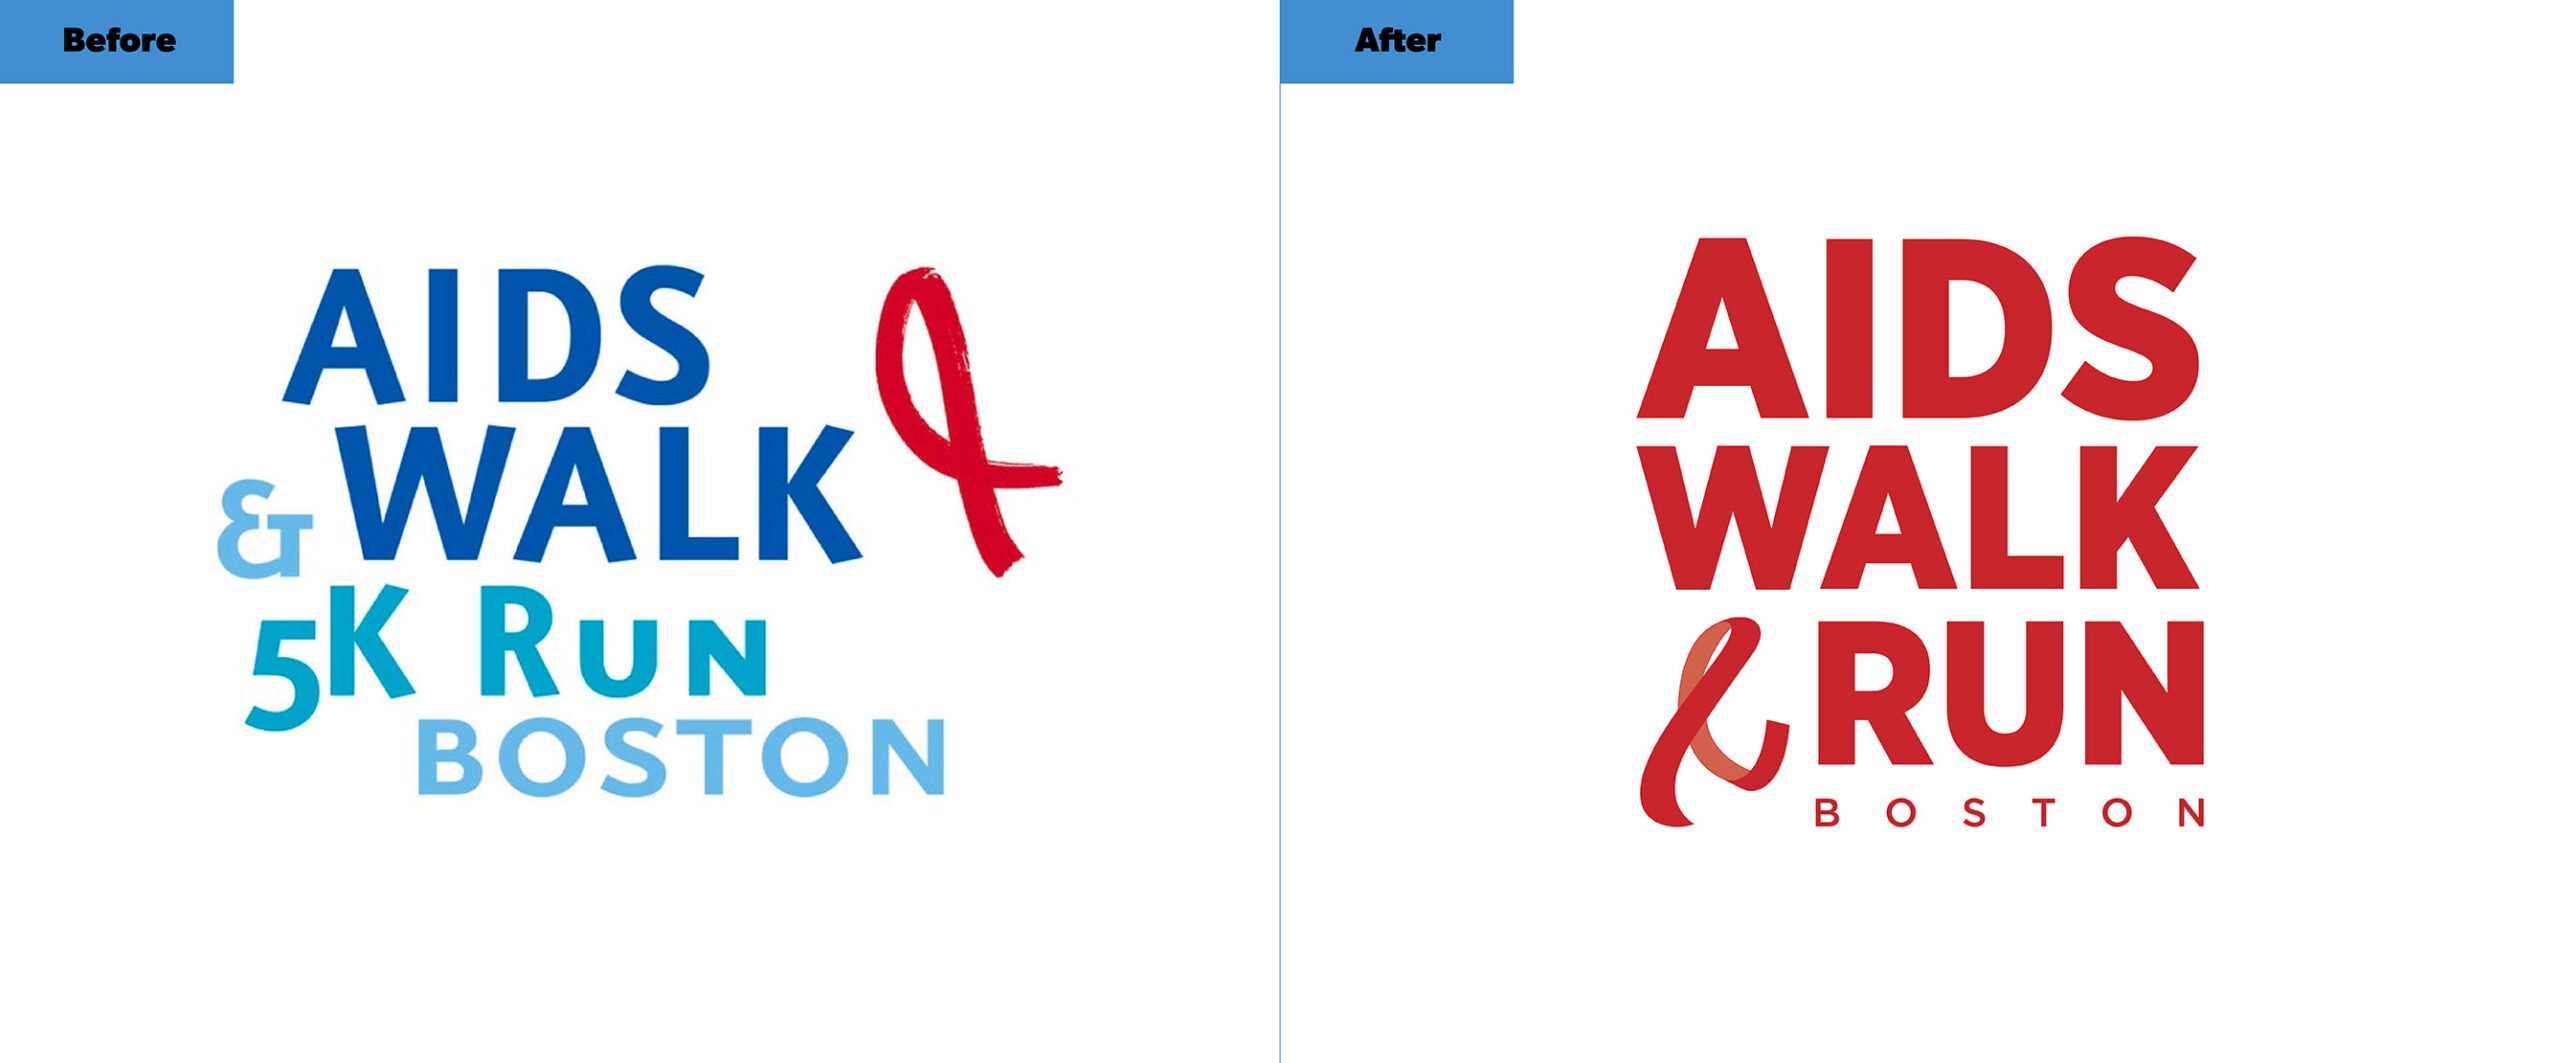 AIDS Walk Boston Logos Before and After